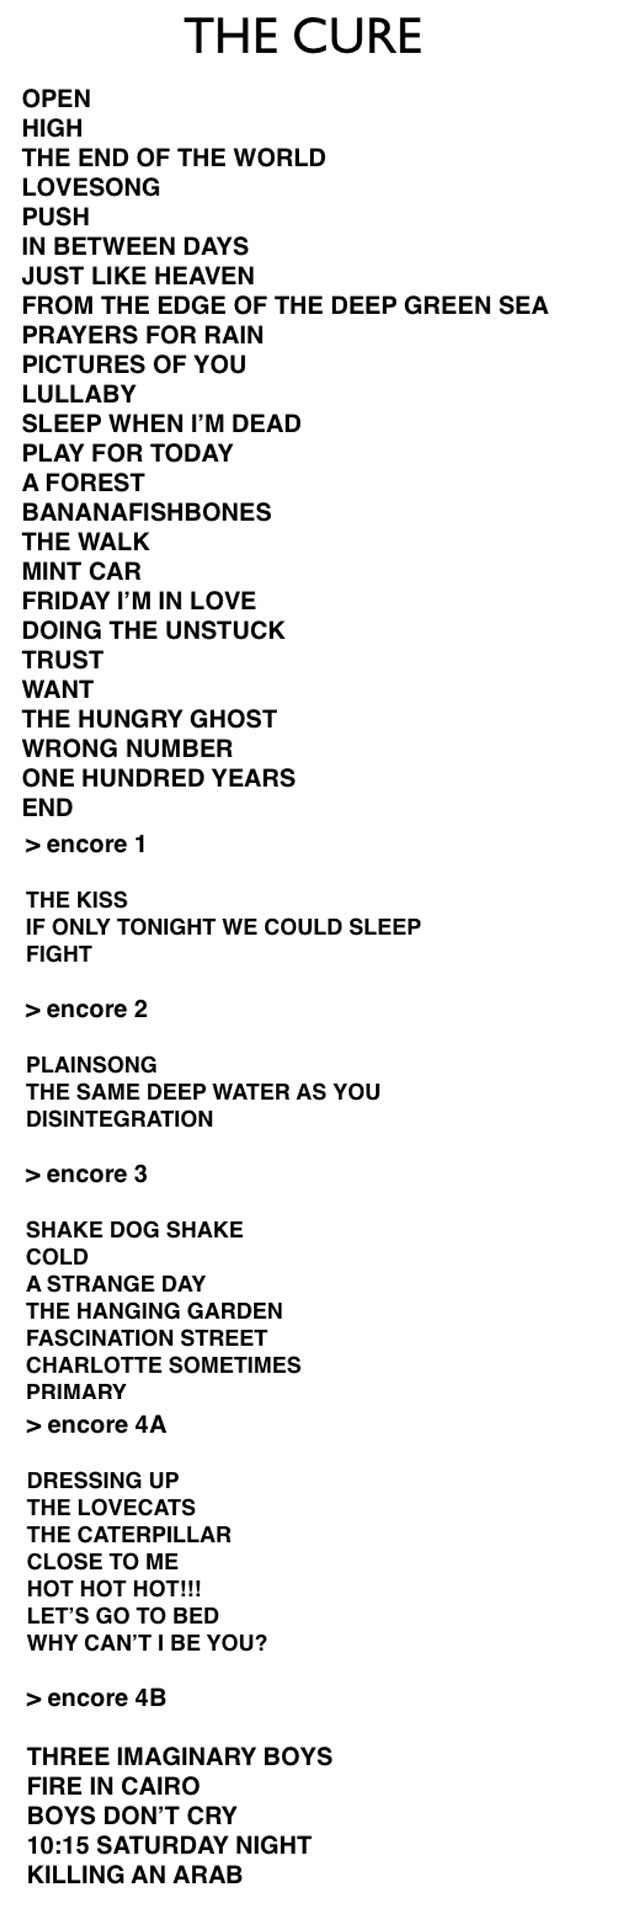 THE-CURE-MEXICO-SETLIST-2013